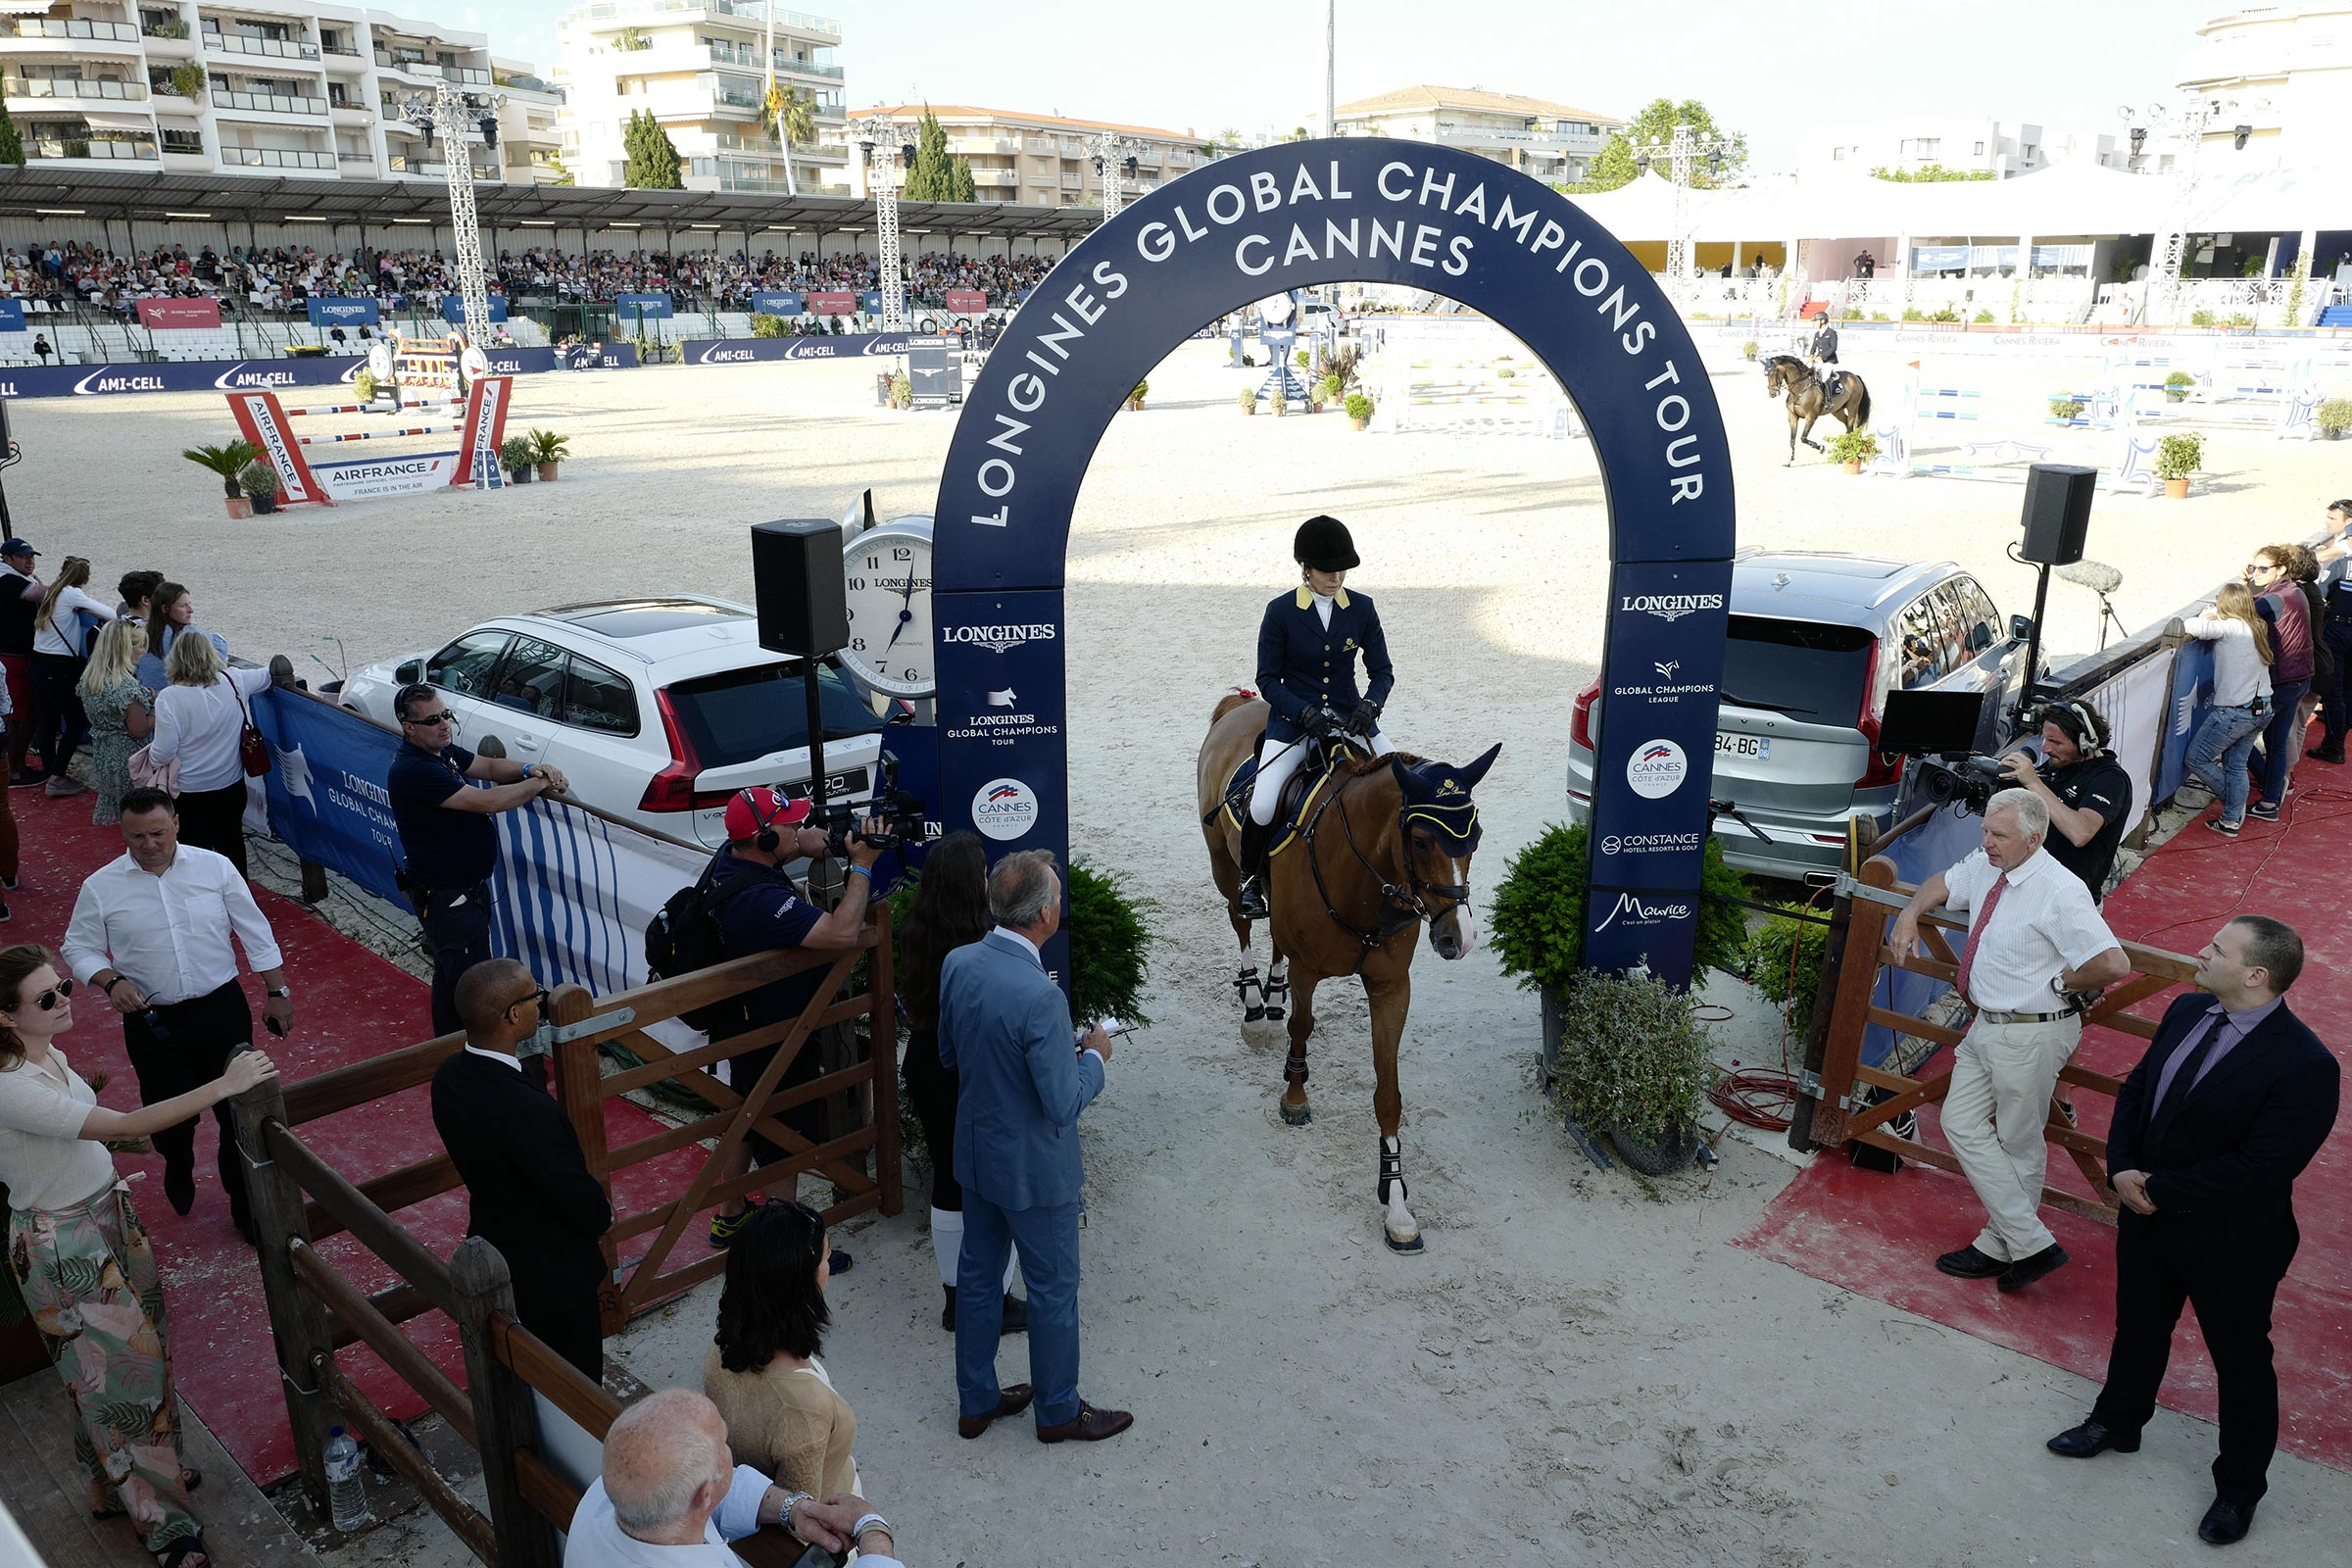 Edwina Tops-Alexander on Casquell ph.Stefano Grasso/LGCT CANNES 2019 DOWNLOAD